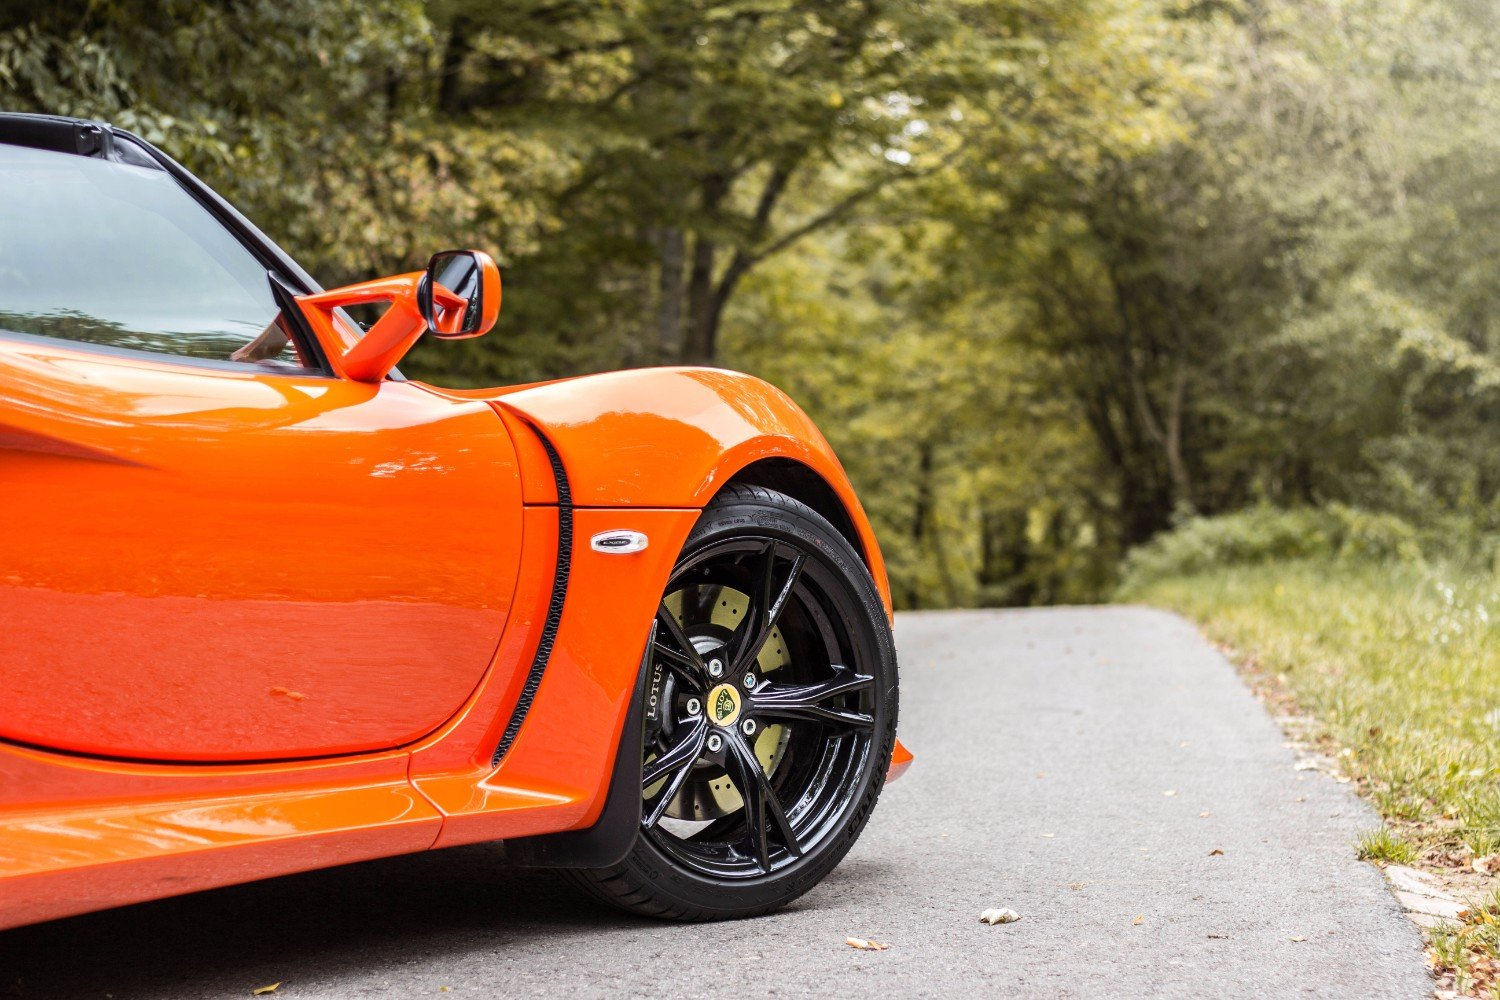 Lotus Exige S Roadster in the woods